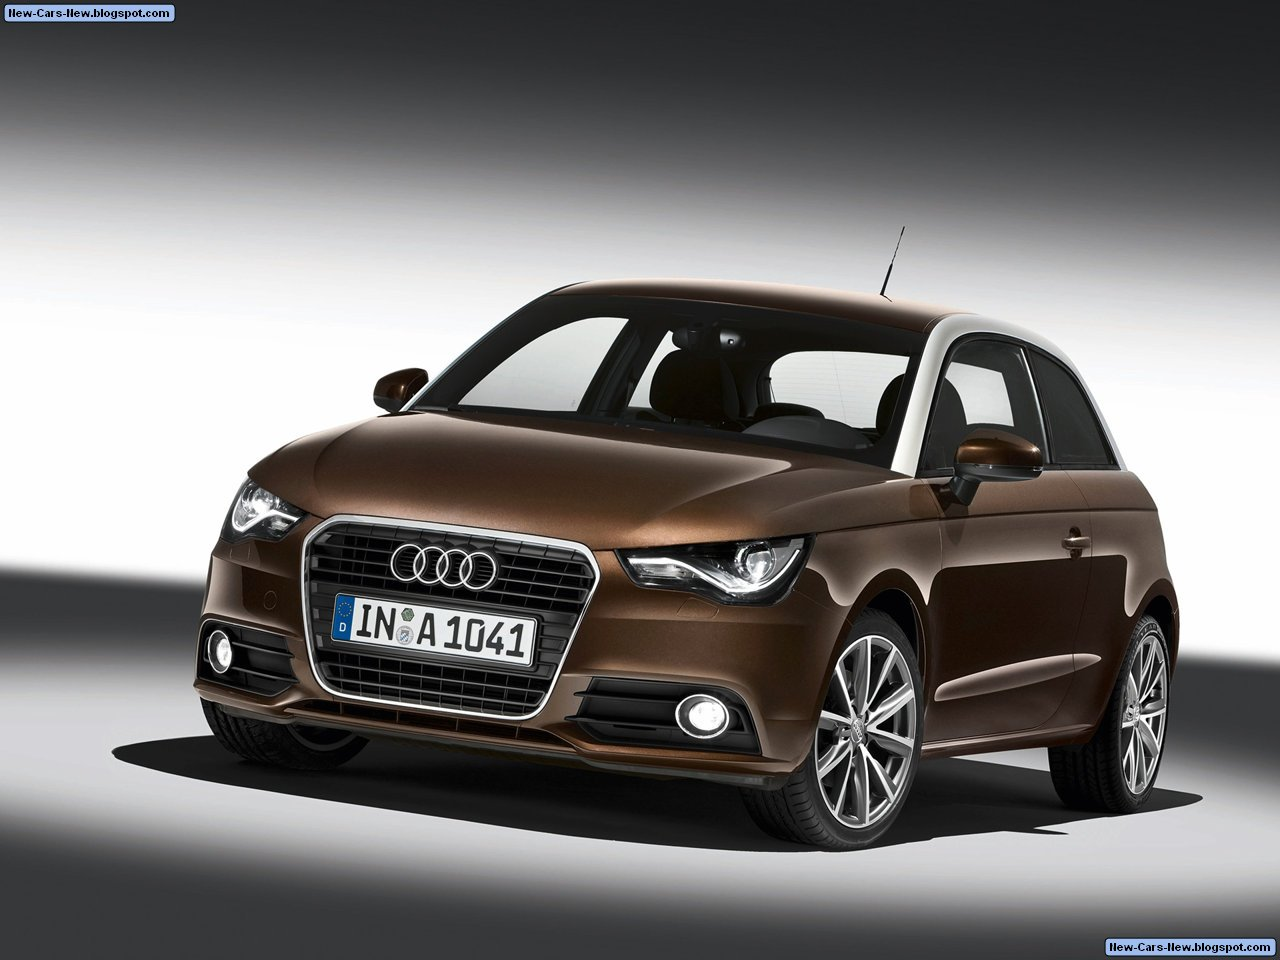 Wallpaper Speed Car Audi A1 2011 Best Car Blog Audi A1 2011